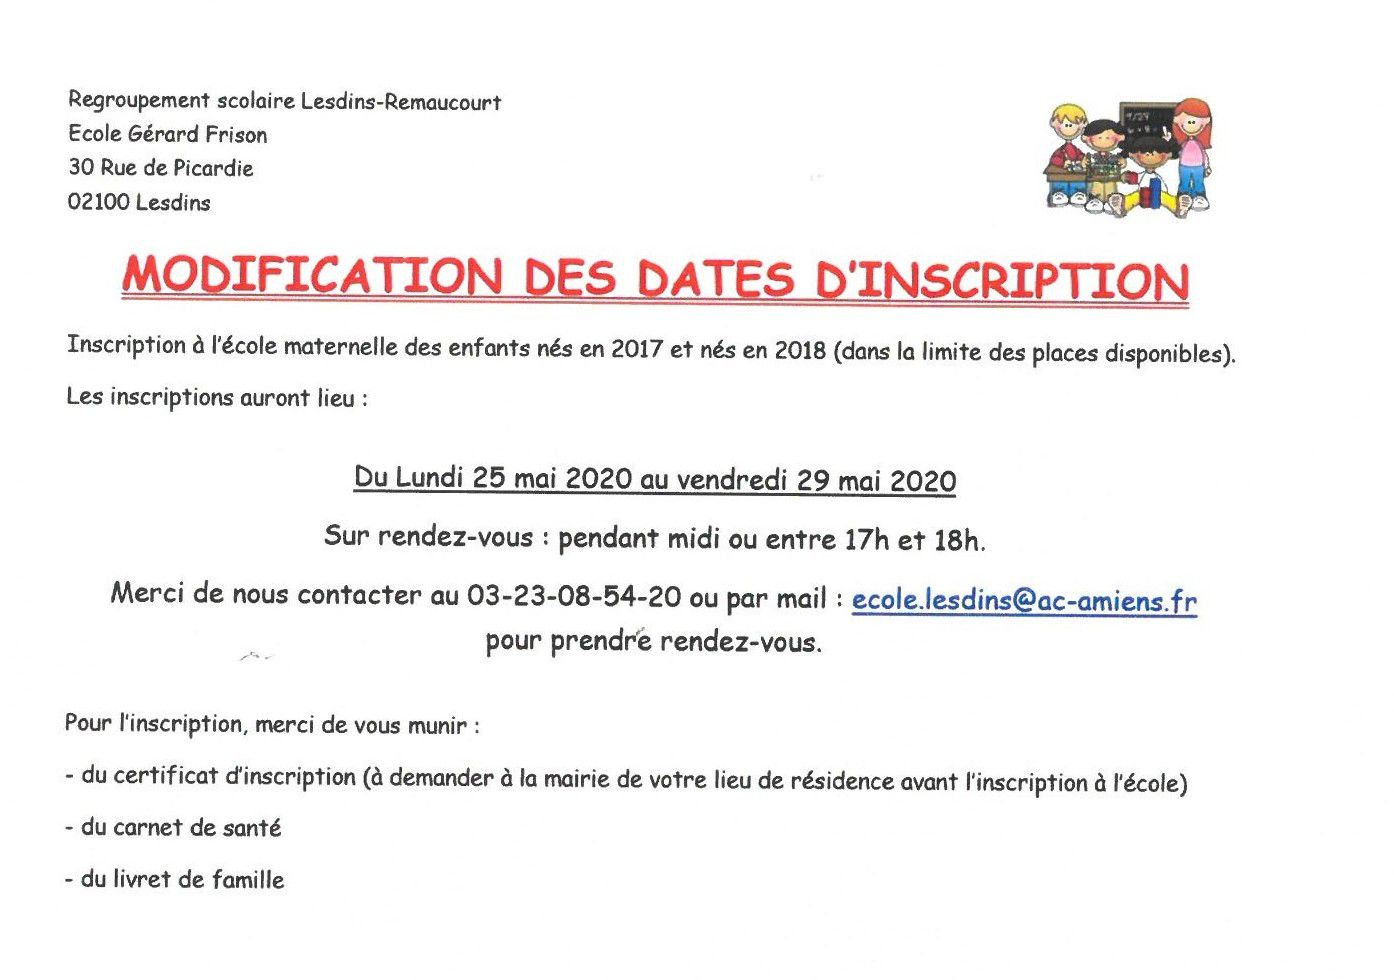 Info Mairie: regroupement scolaire Lesdins-Remaucourt.